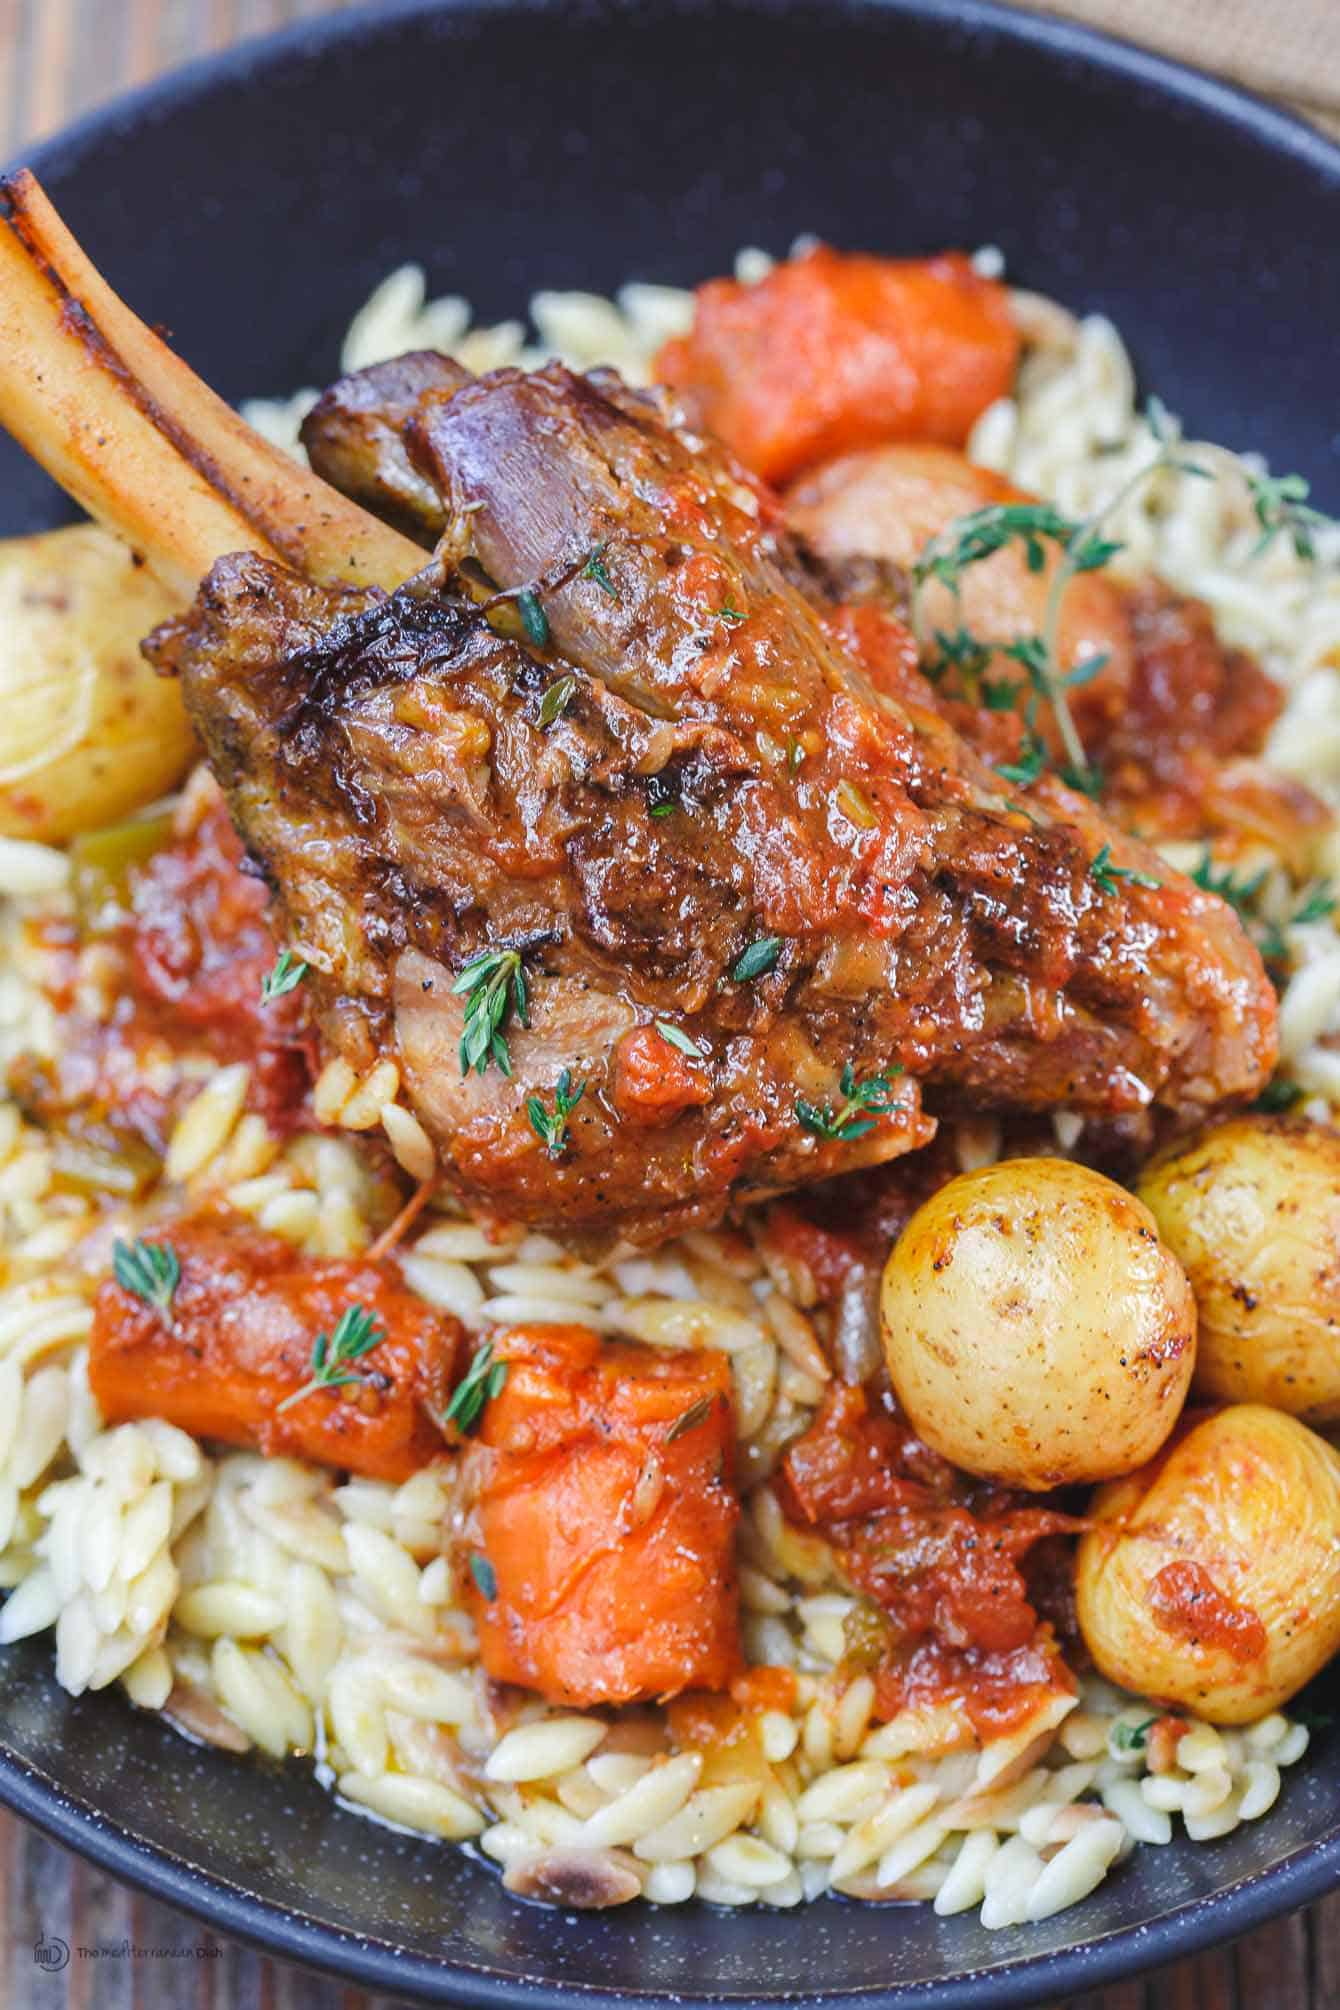 Mediterranean style wine braised lamb shanks with vegetables the mediterranean style wine braised lamb shanks recipe the mediterranean dish braising and slow forumfinder Choice Image